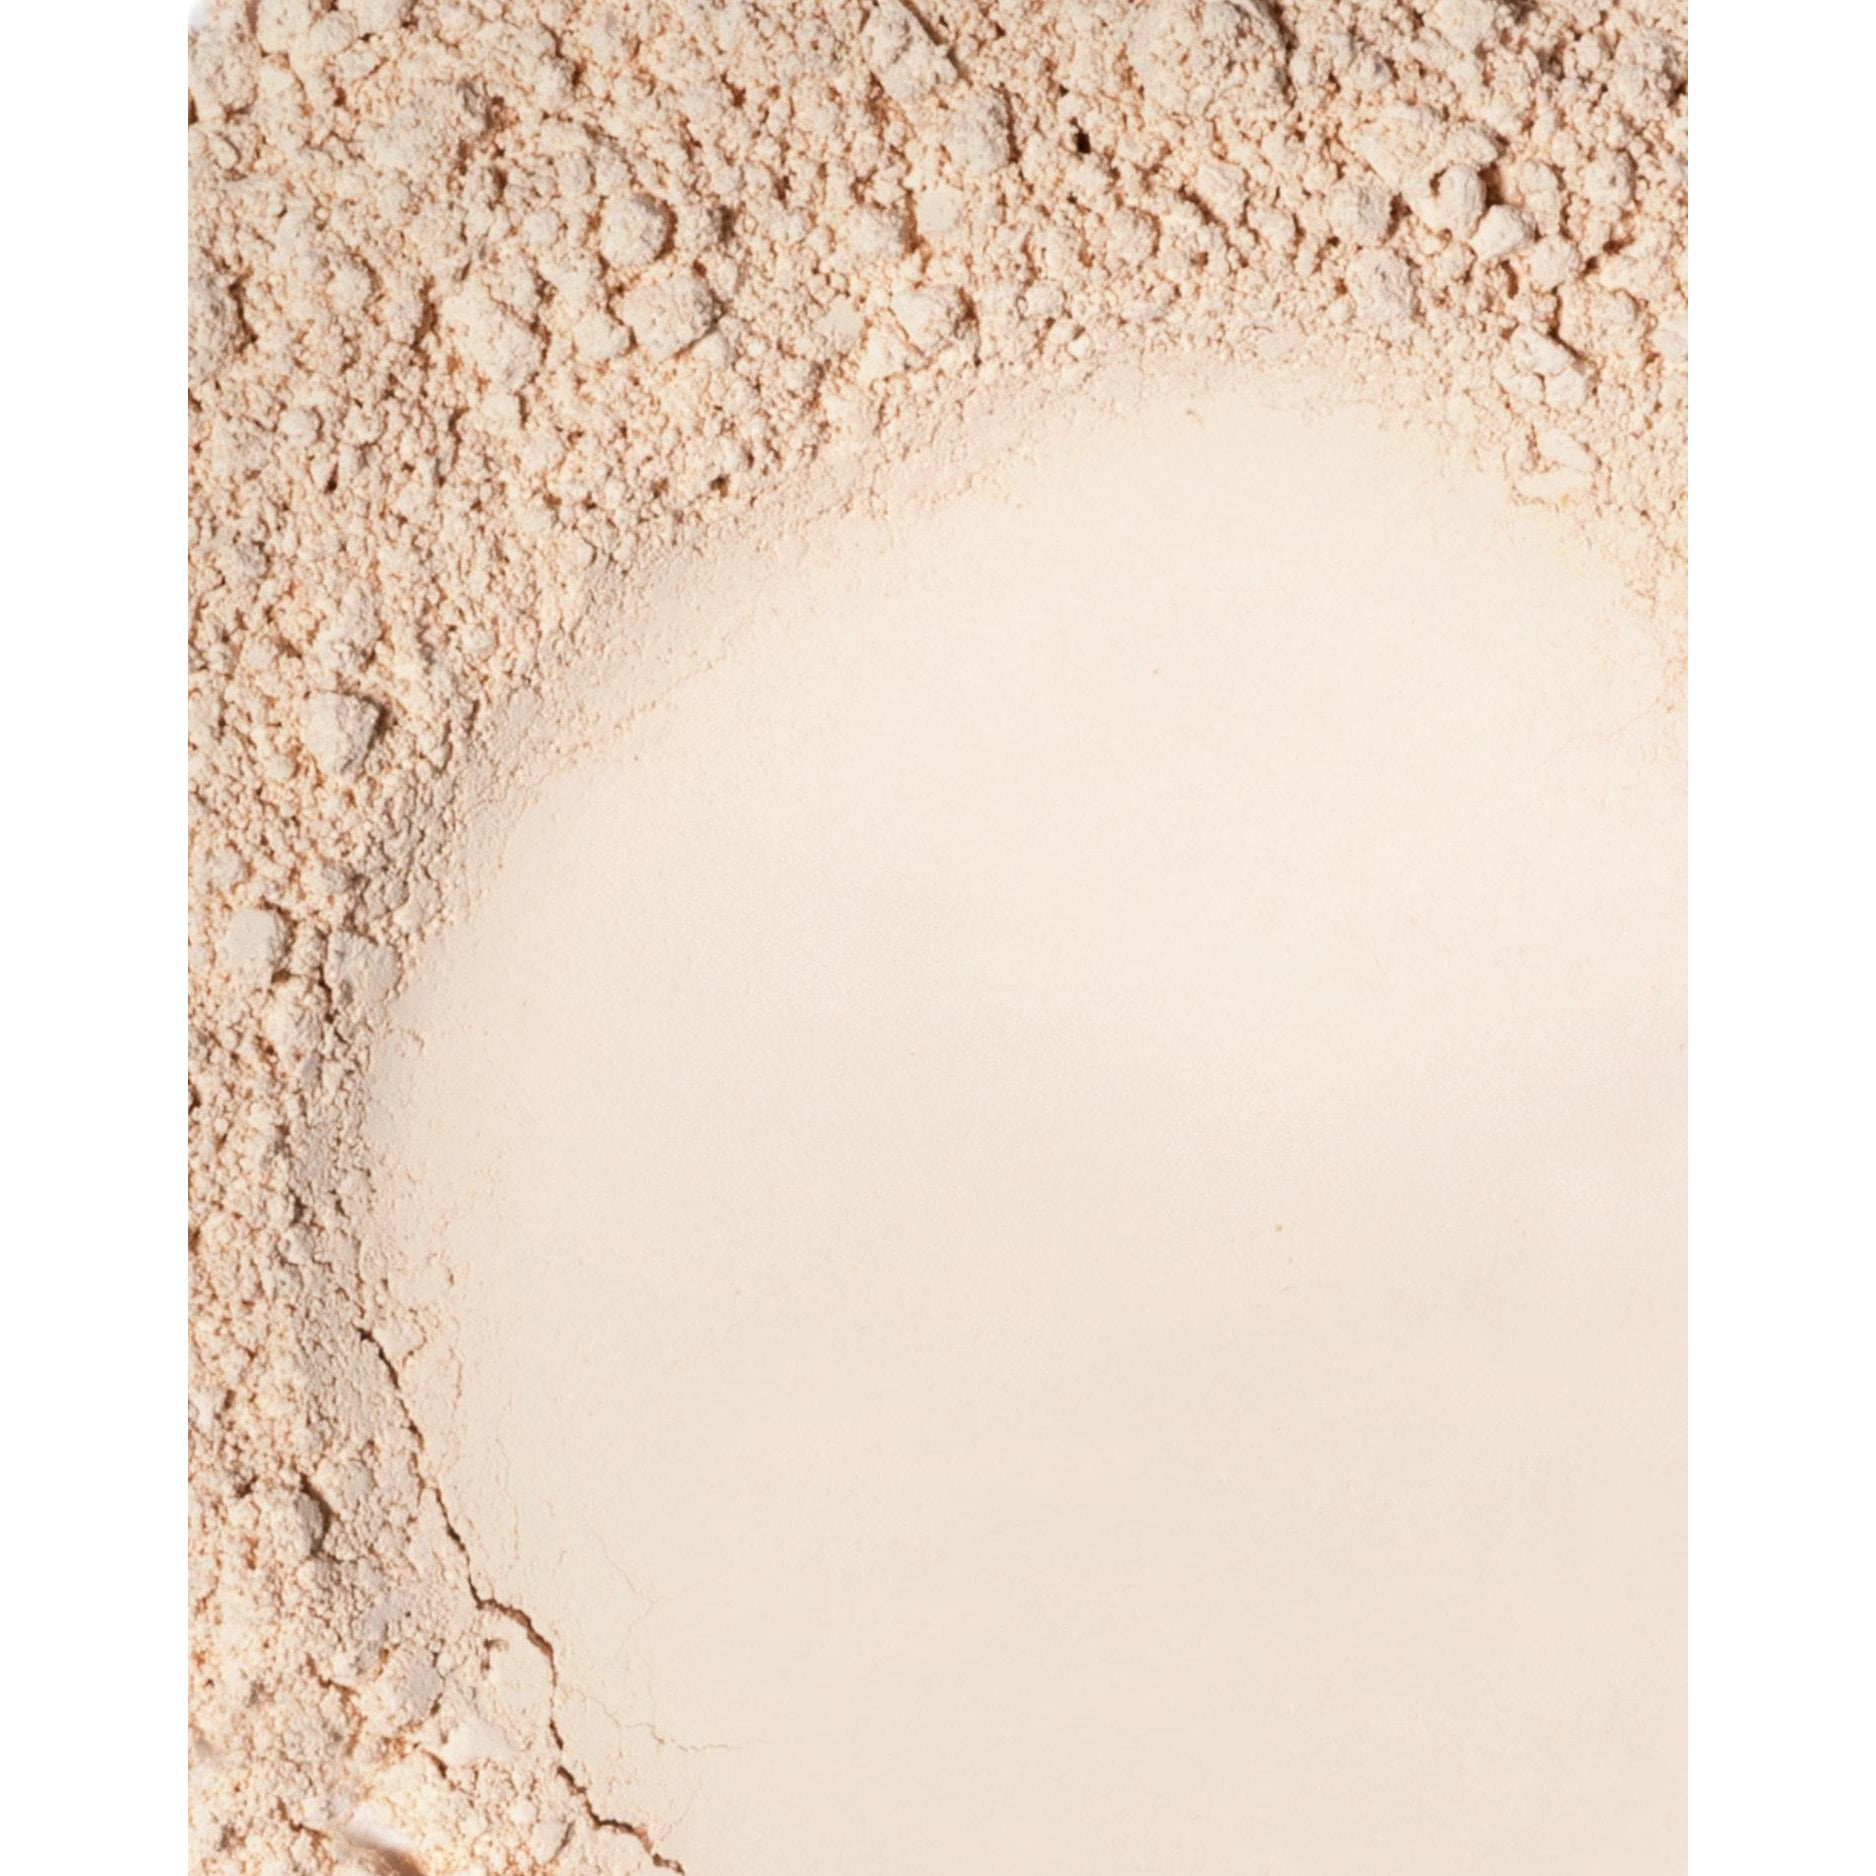 Sanguine - Omiana Loose Powder Mineral Foundation No Titanium Dioxide and No Mica